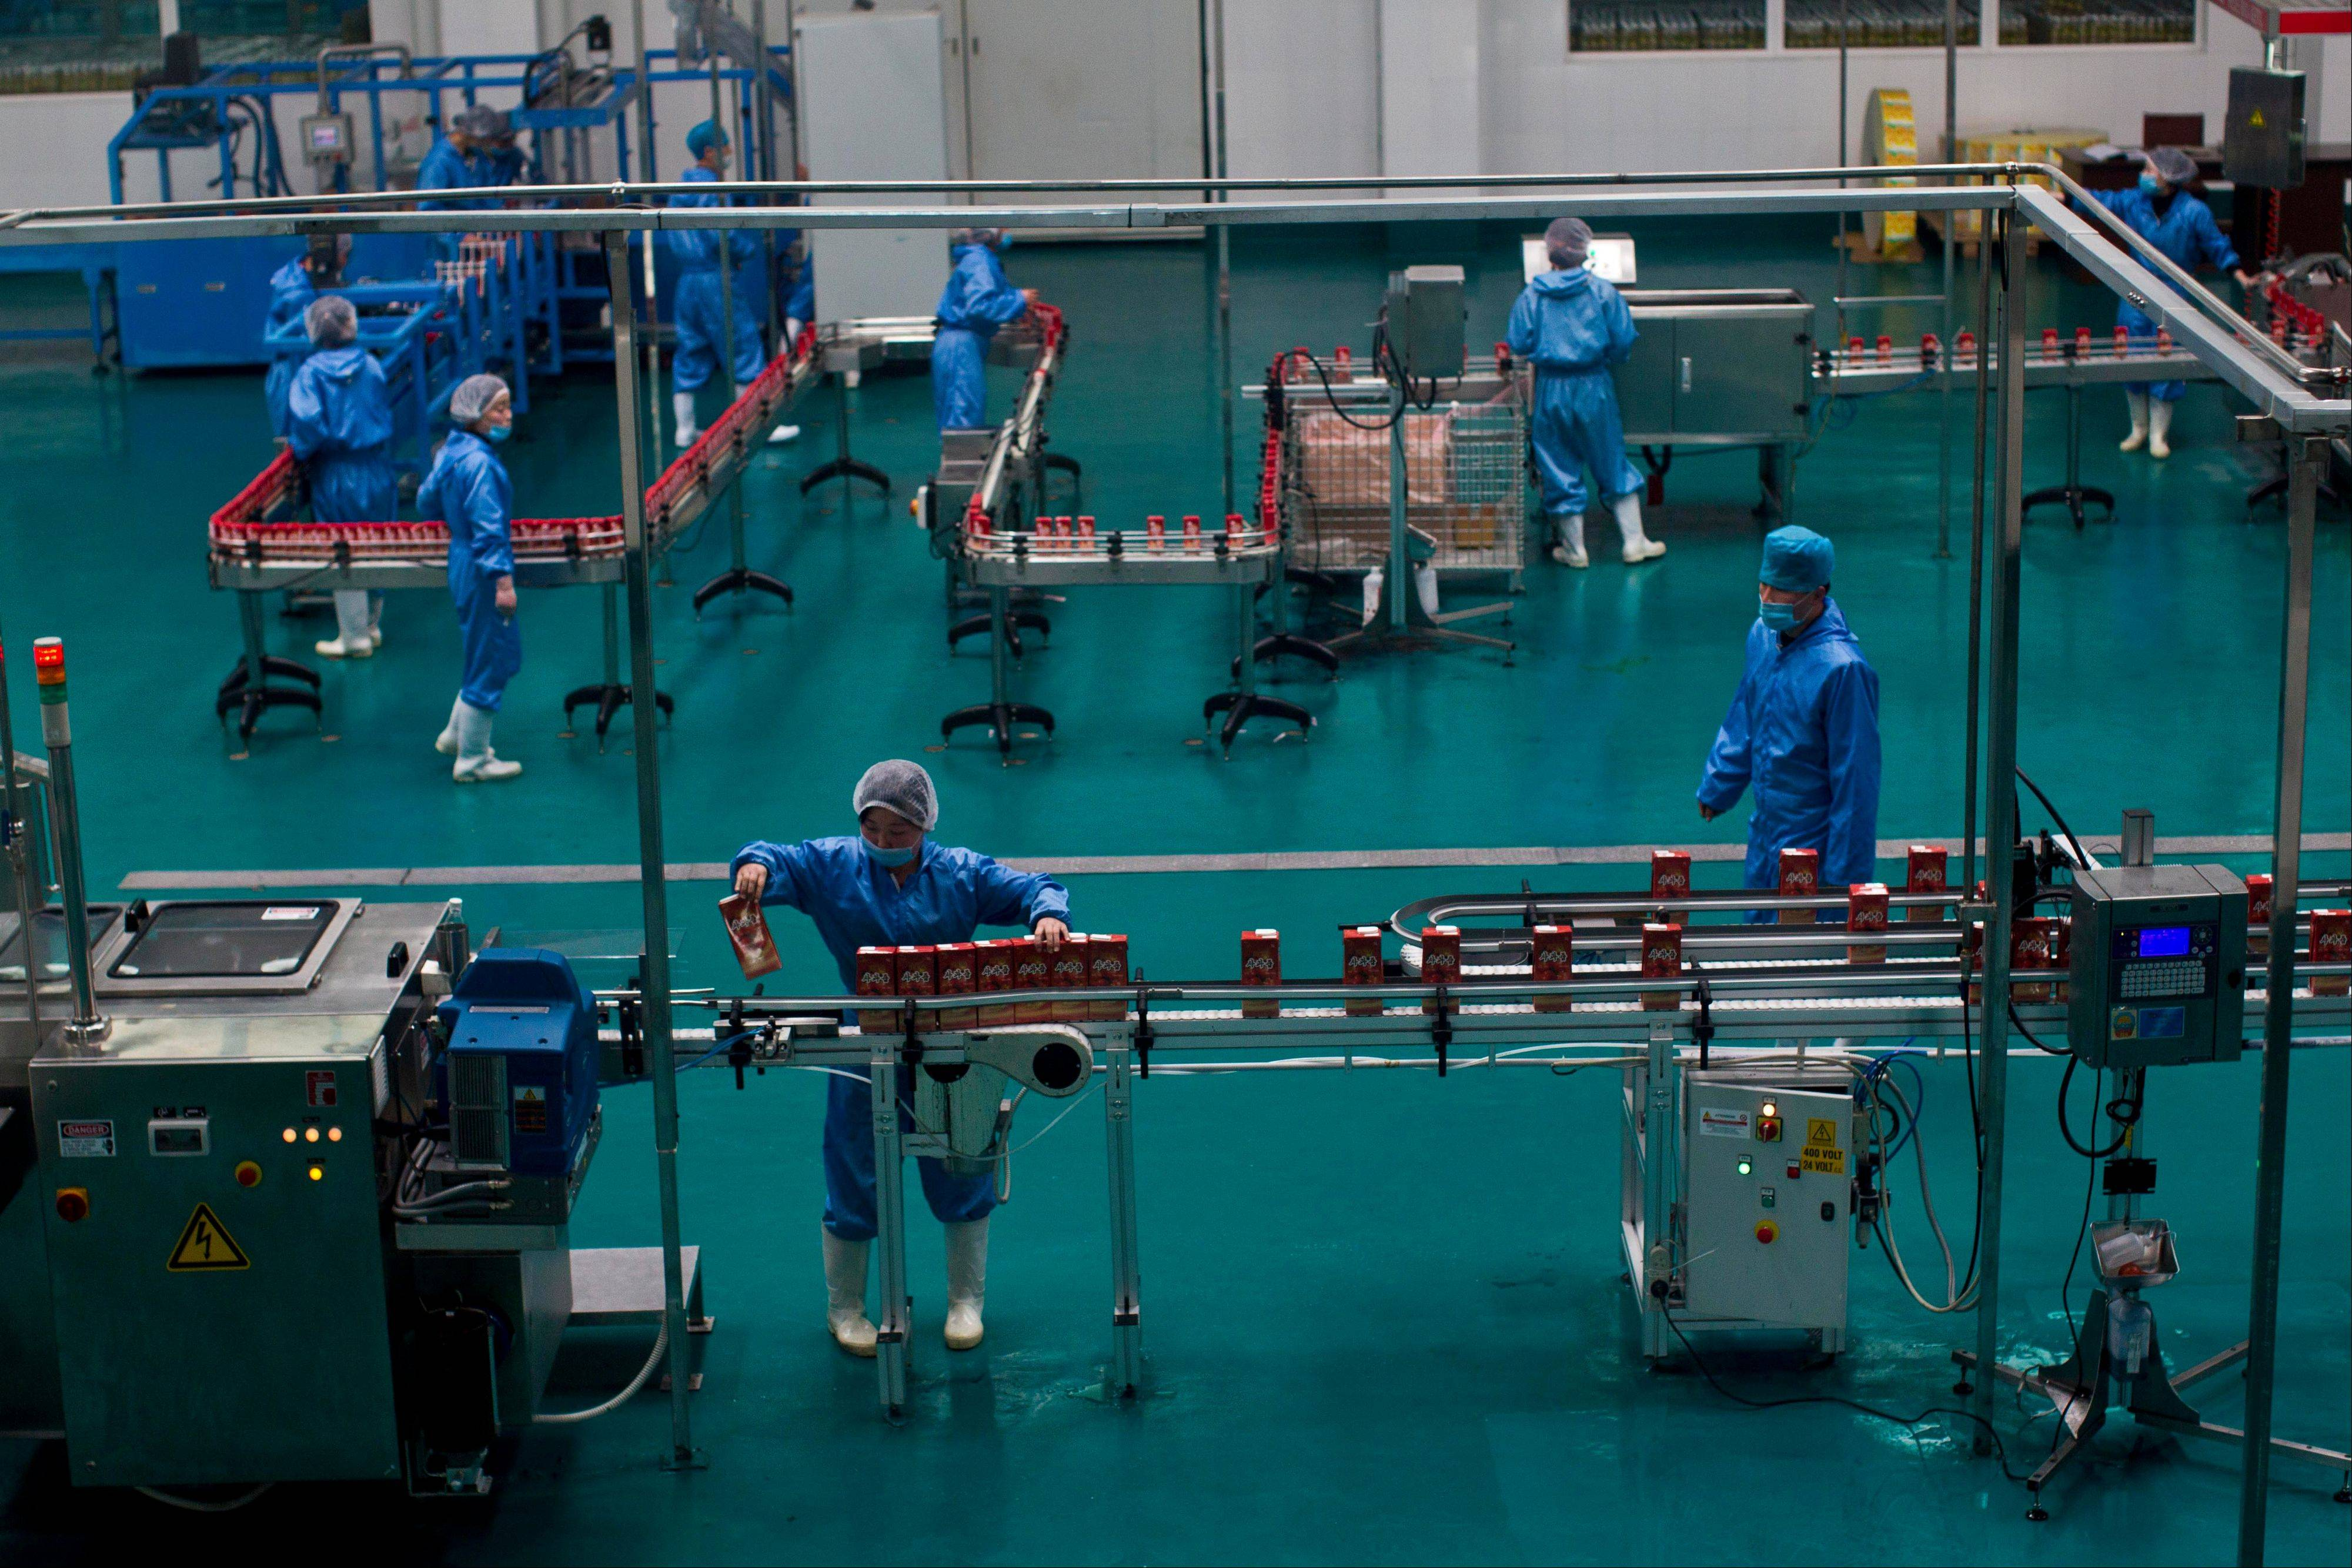 In this Tuesday, April 10, 2012 photo, North Koreans work at a factory bottling apple juice on the grounds of a communal apple farm on the outskirts of Pyongyang, North Korea. A North Korean economist said that the government introduced new economic management methods in April 2013 that relax state control of workers' salaries.